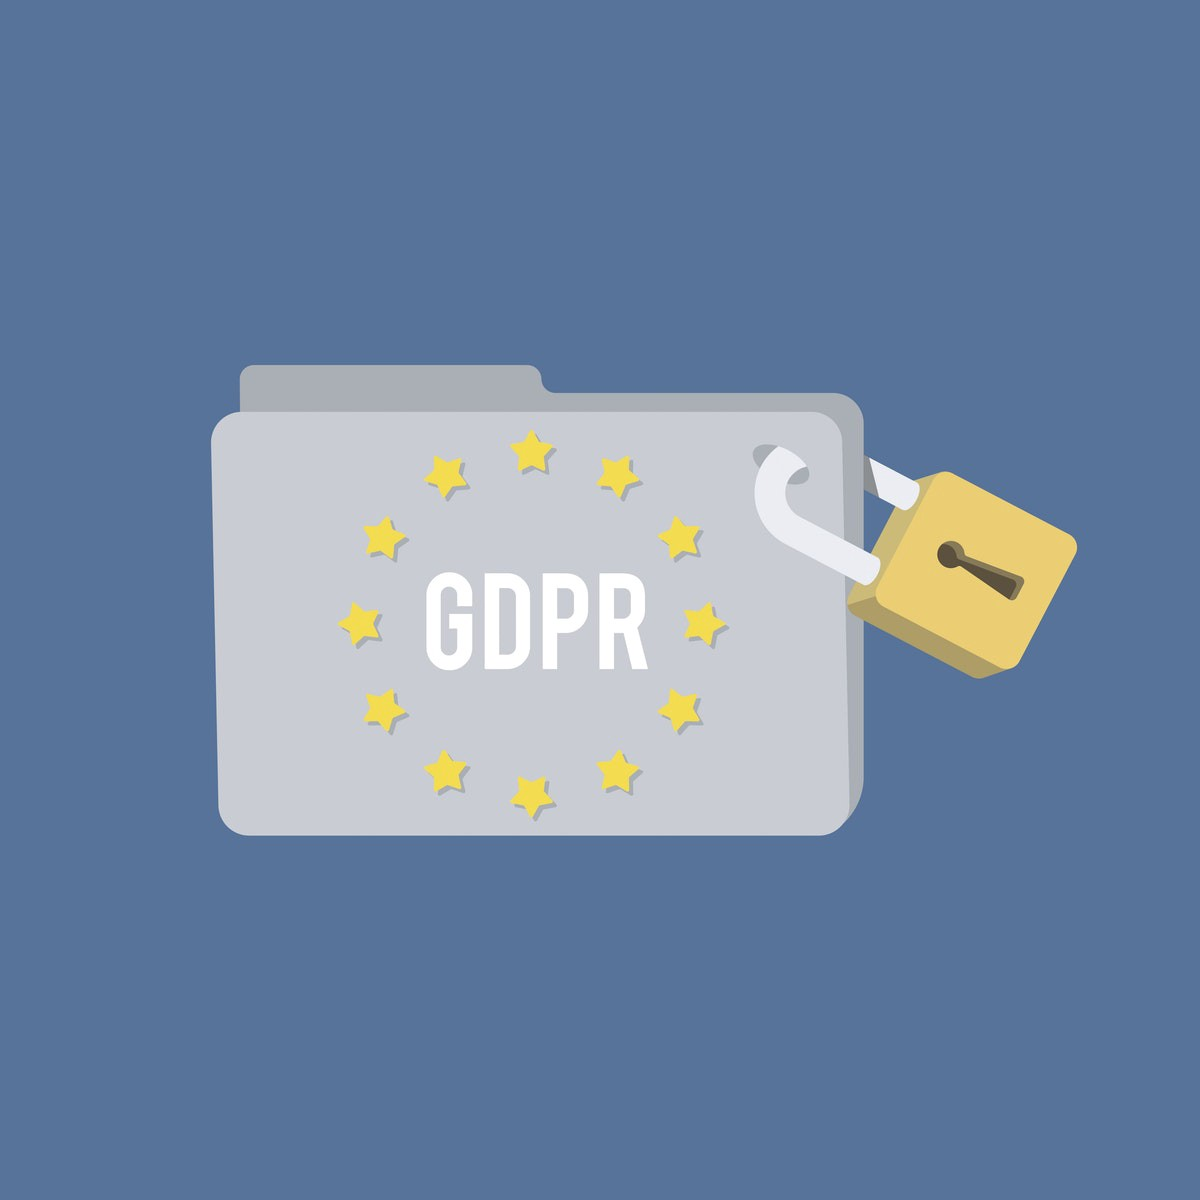 /next-steps-in-gdpr-whats-to-come-in-2019-2137999a4607 feature image